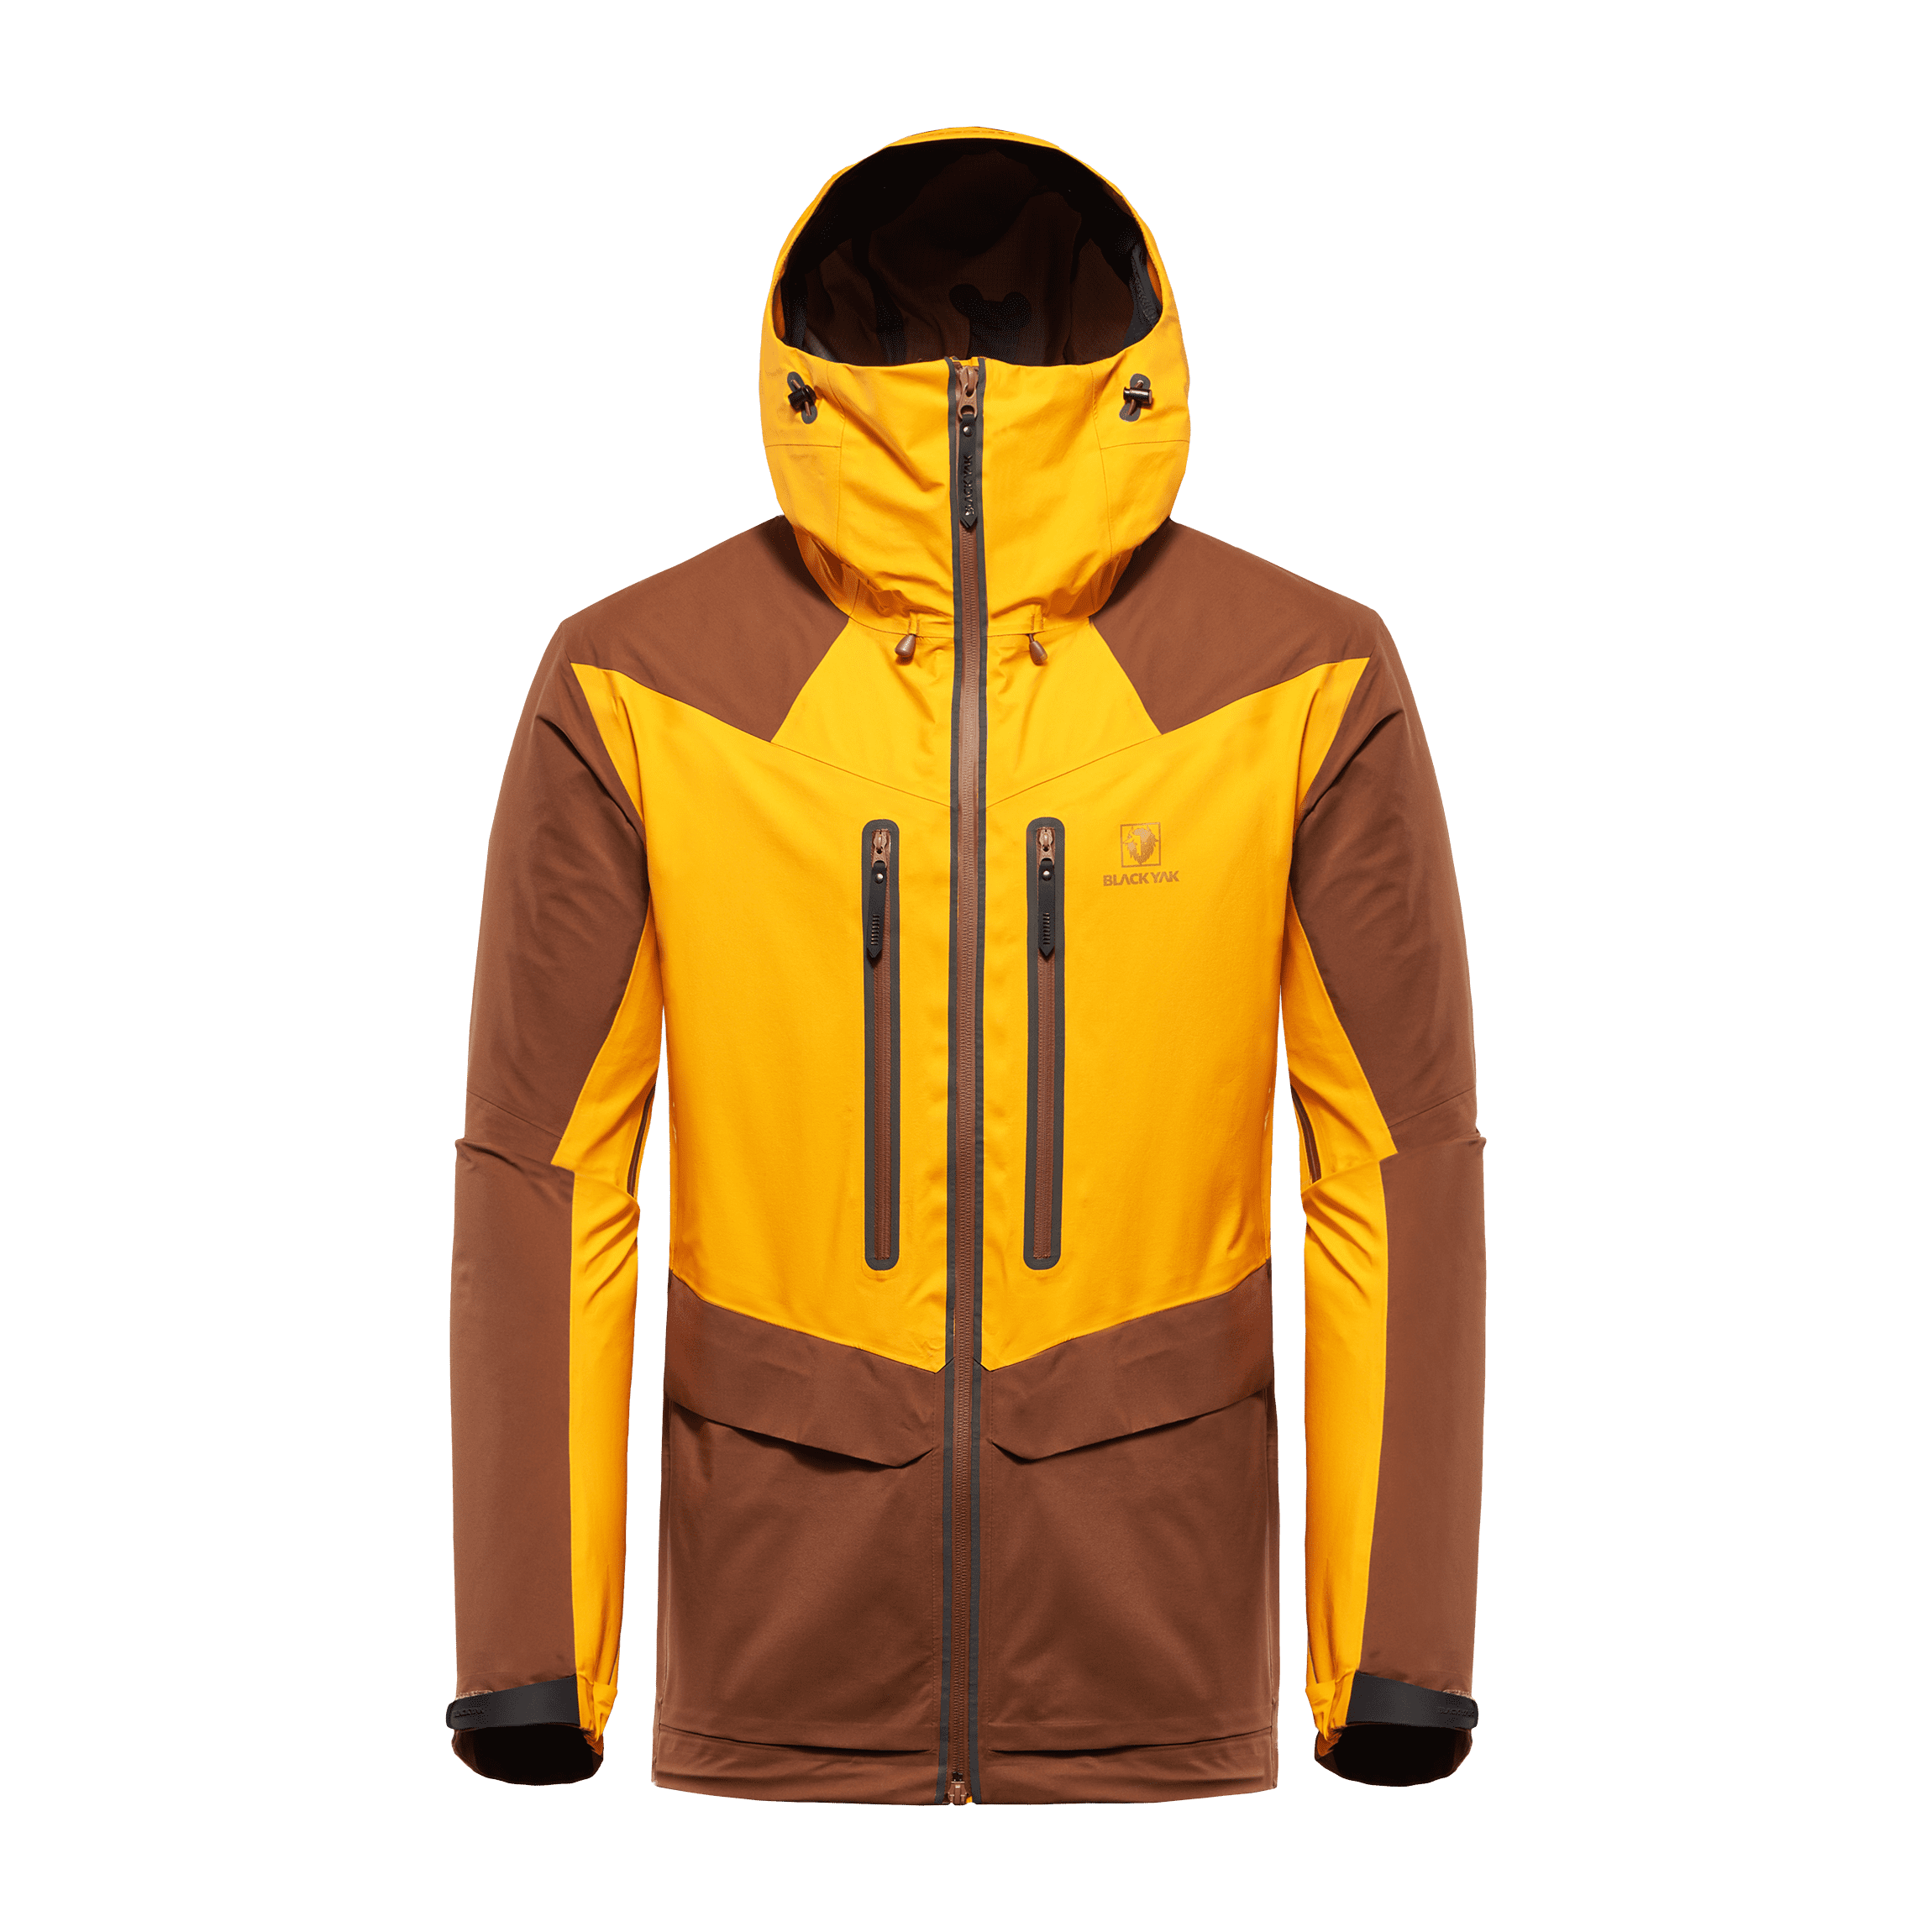 Blackyak Made For Missions Webshop For Outdoor Clothing